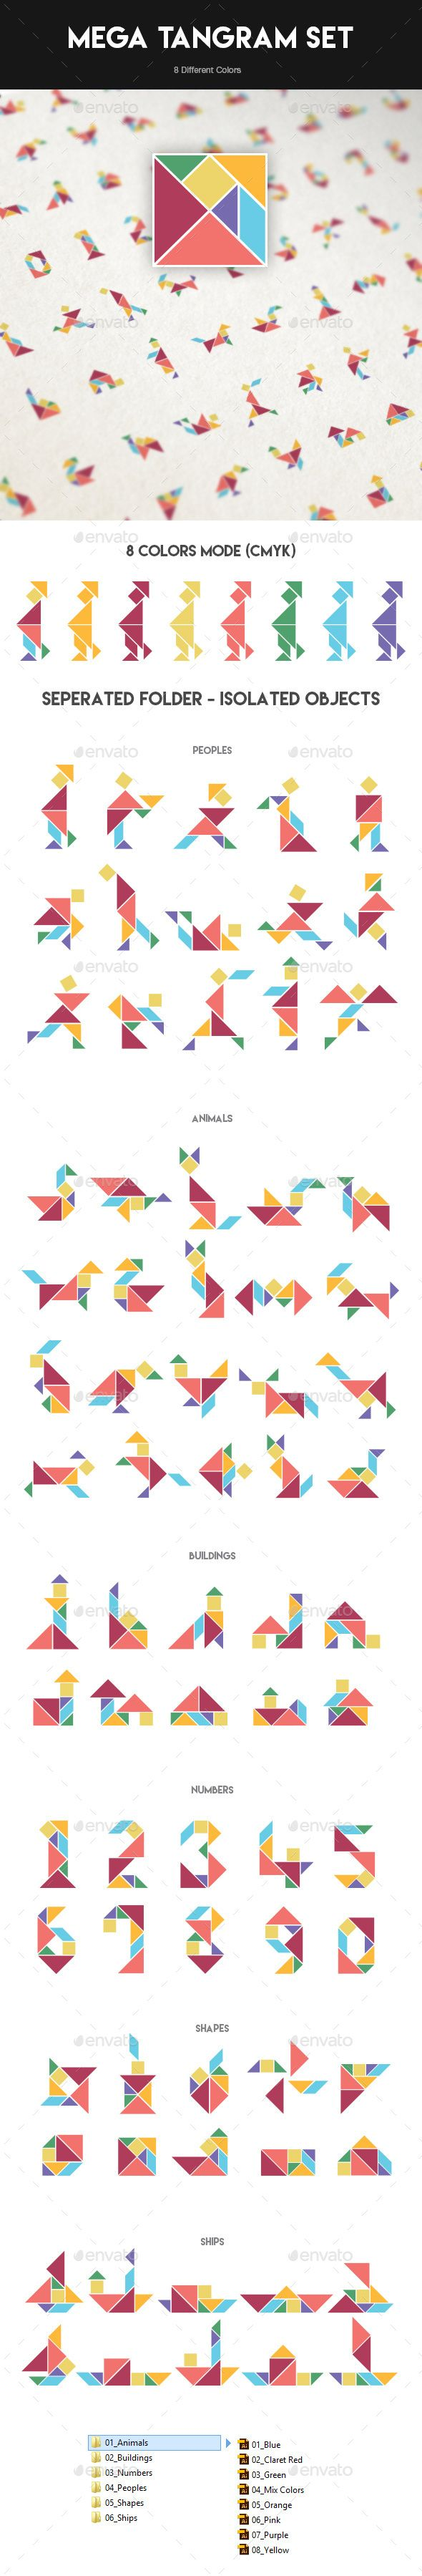 Mega Tangram Set (75 x 8 Colors)